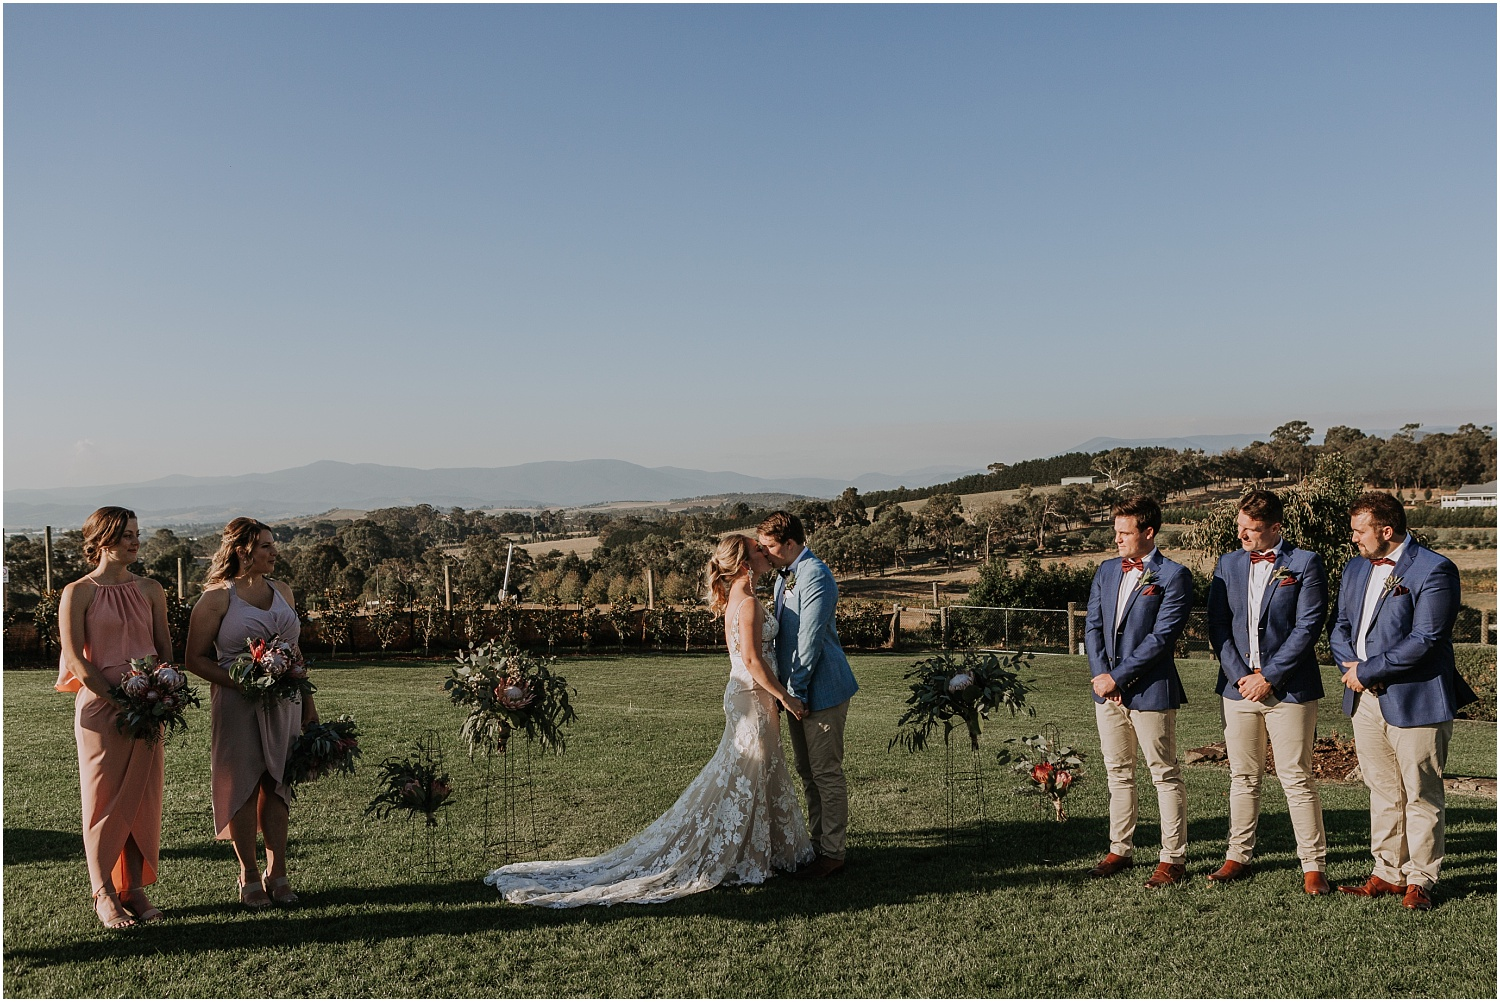 Lacey and Warwick's Yarra Valley winery wedding at Vines Helens Hill._0053.jpg